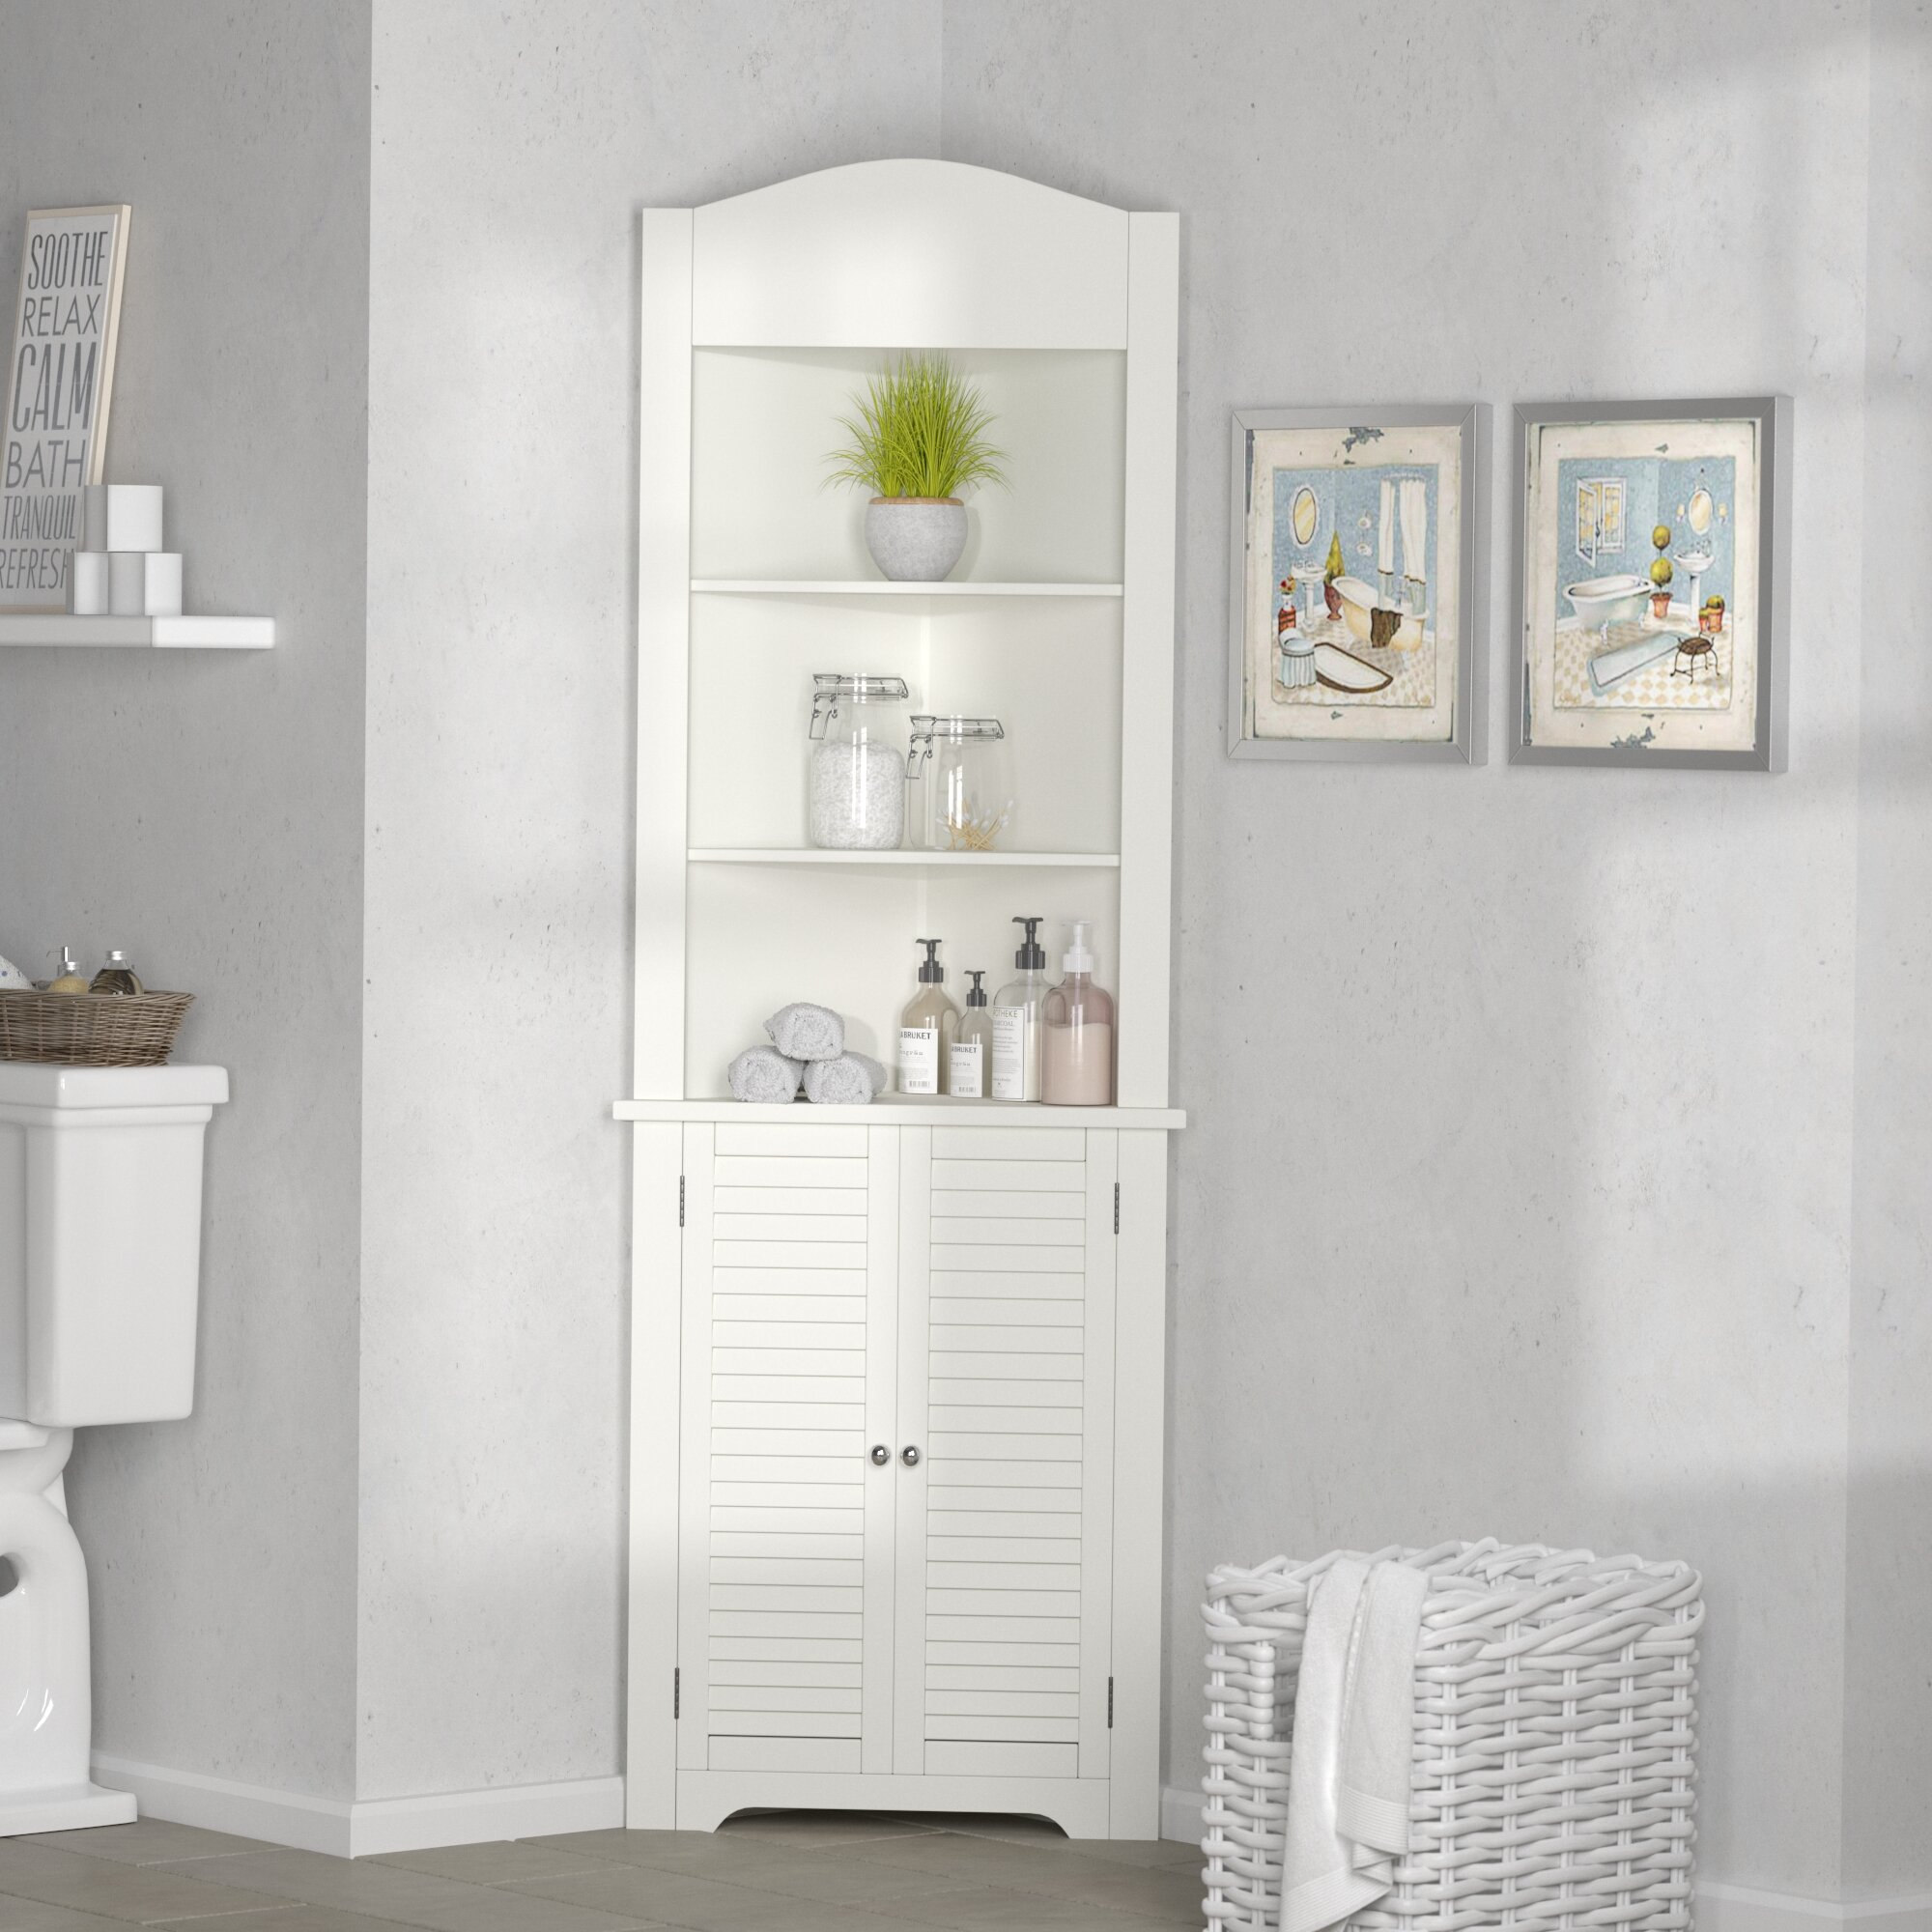 Greensen Bathroom Cabinet Corner Shelf Waterproof Bathroom Cabinet Free Standing Side Cabinet Cupboard Storage Unit With Shutter Door For Bathroom Kitchen Living Room Office White 39 5 X 28 X 80 Cm Bathroom